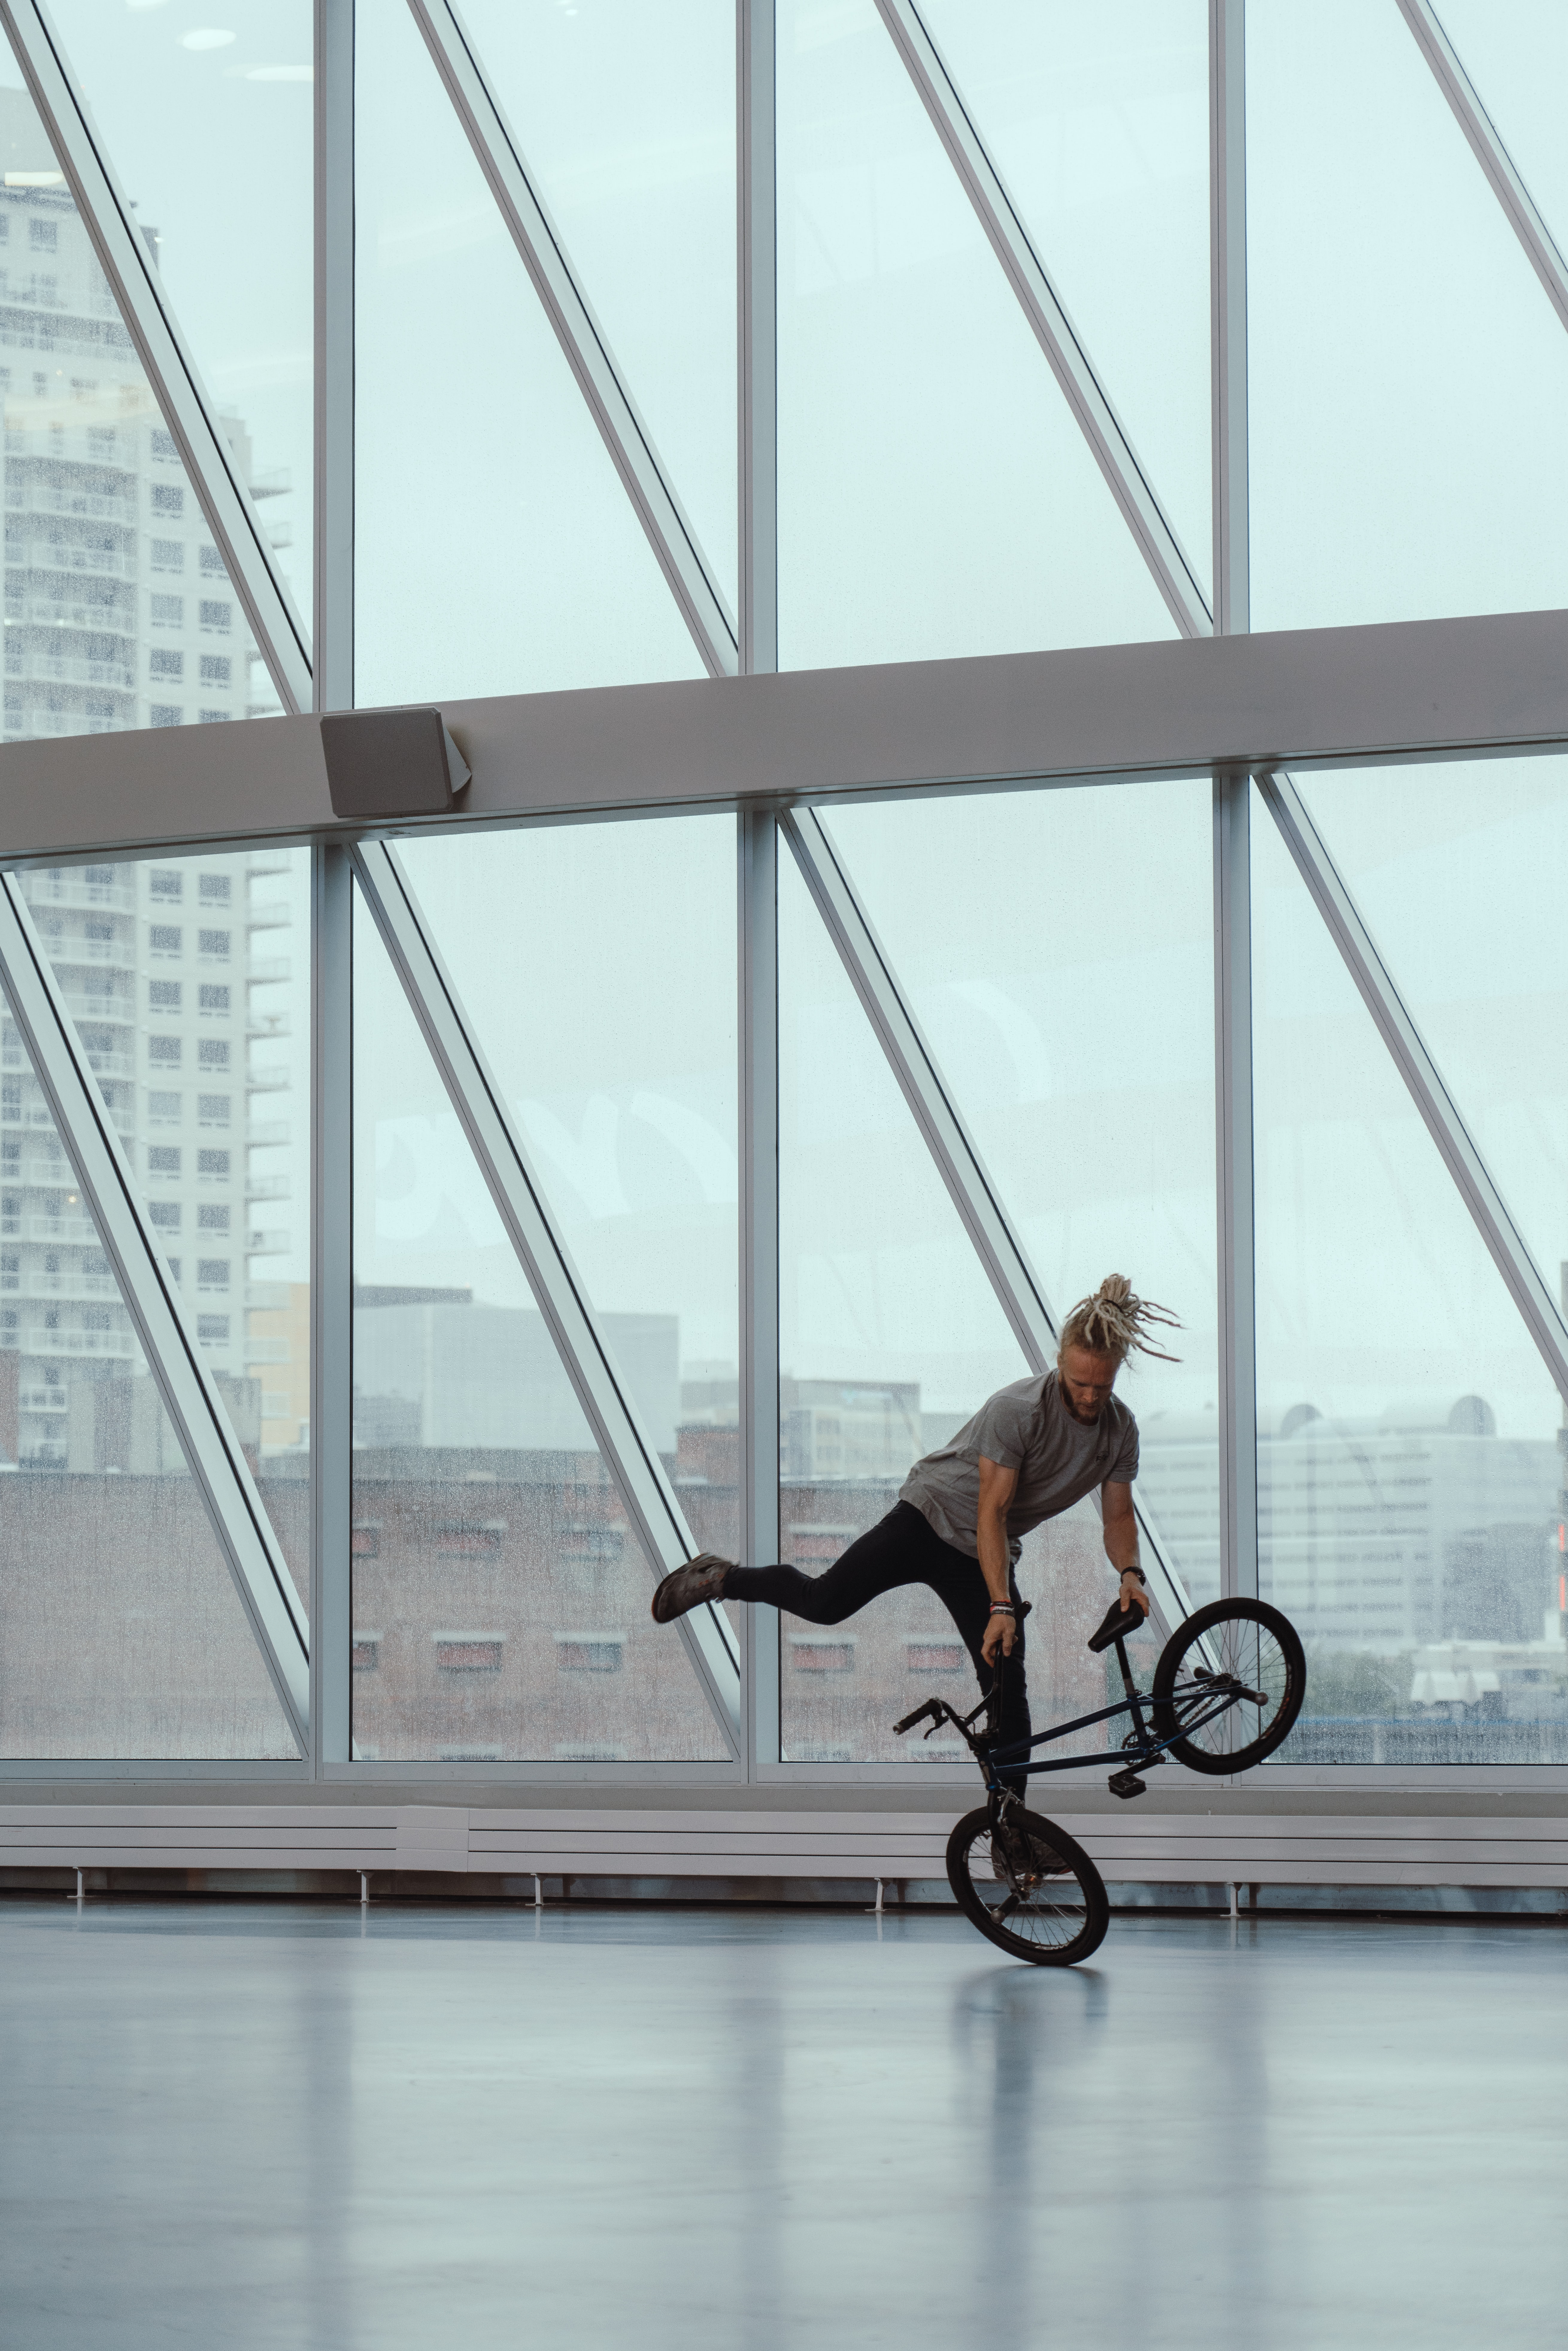 man riding bicycle doing stunts inside glass building during daytime